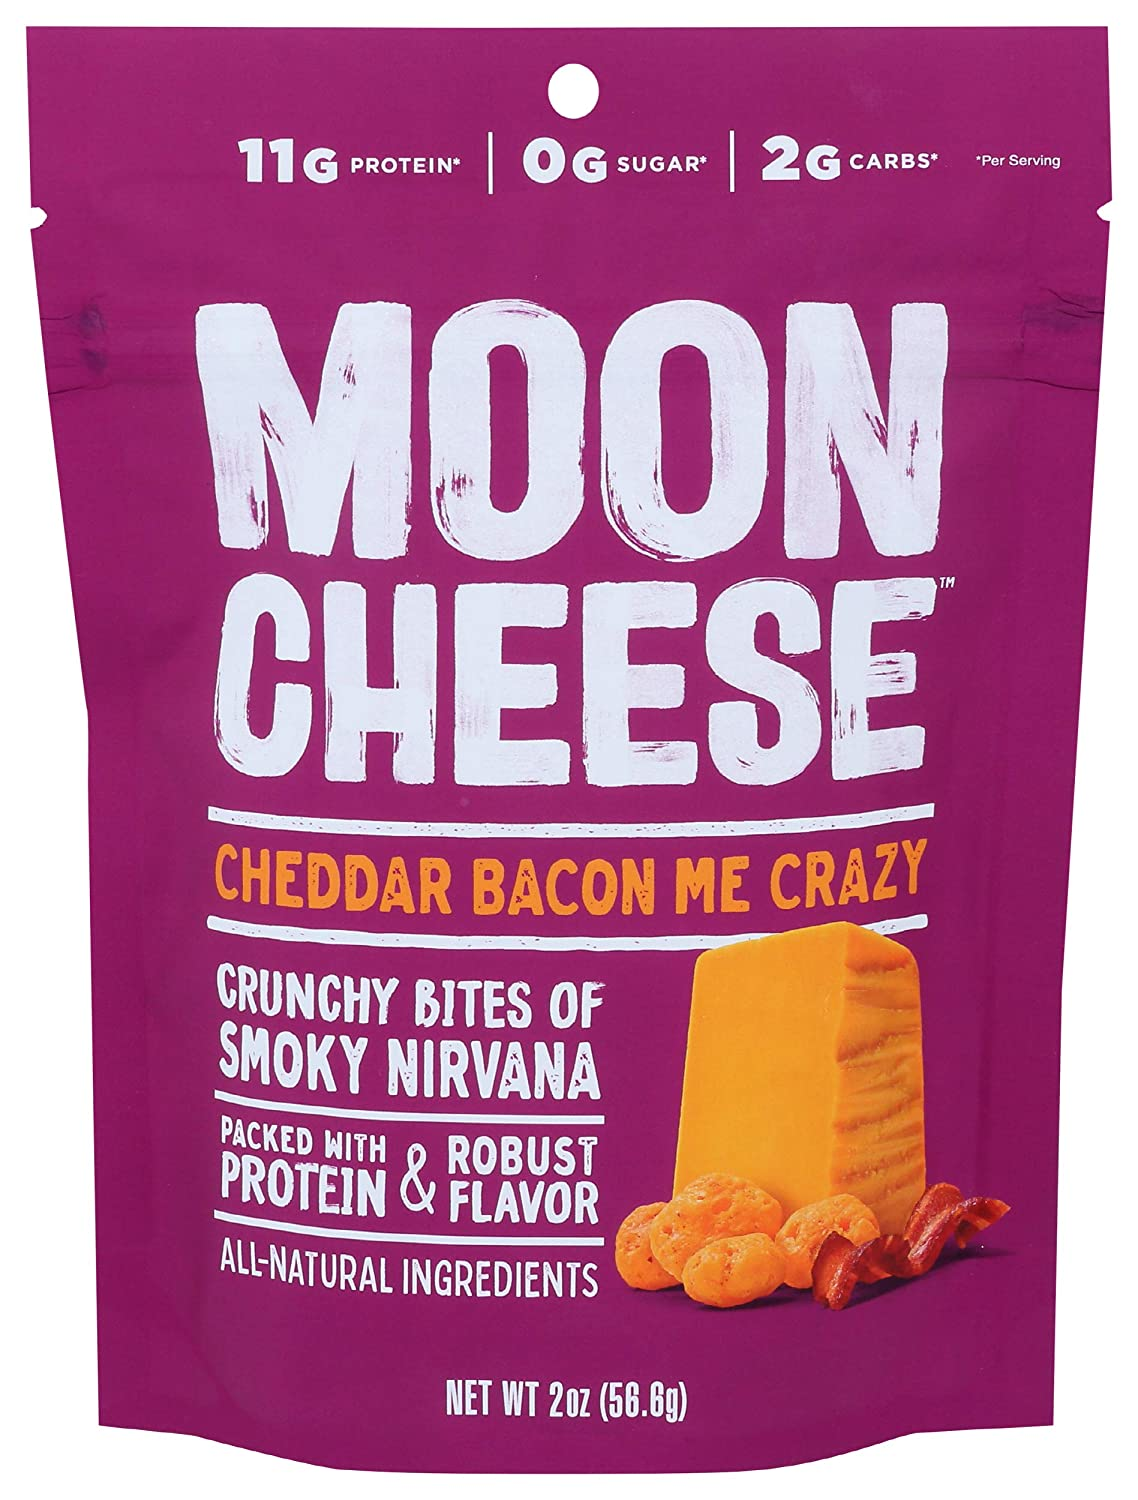 MOON CHEESE Manufacturer OFFicial Free shipping anywhere in the nation shop Cheddar Bacon Me OZ Bites Crazy 2